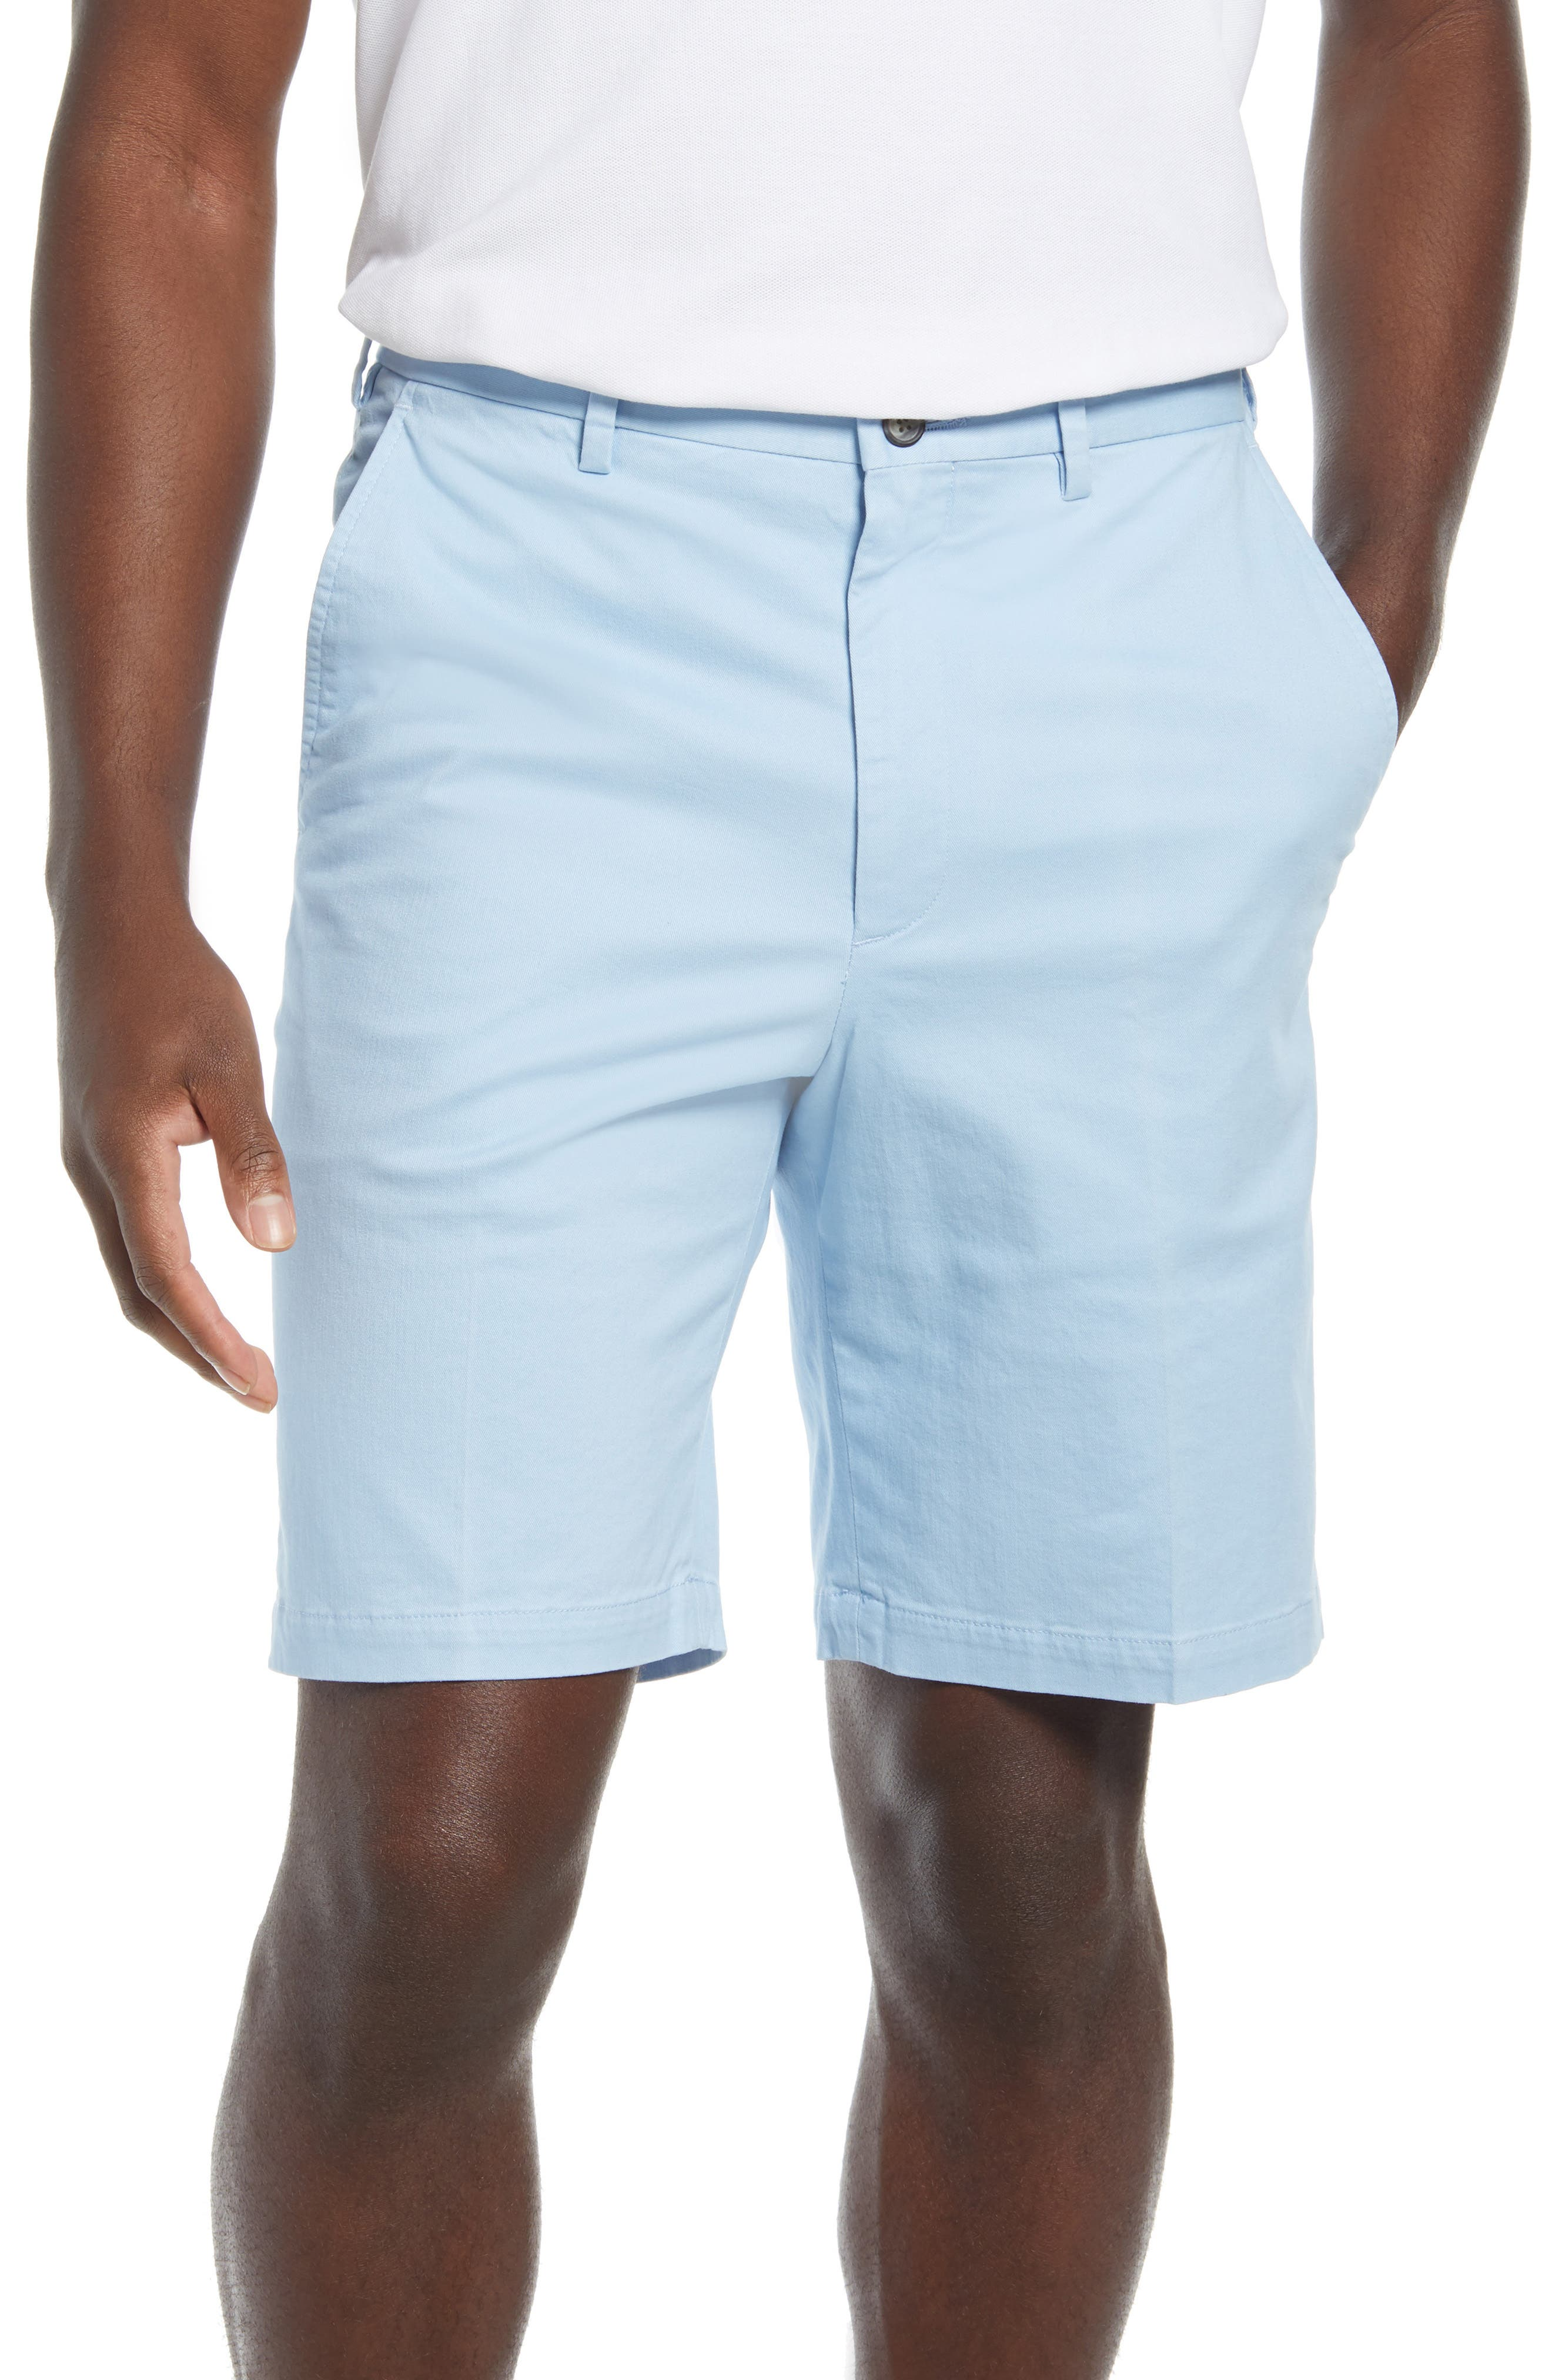 Vintage Style Mens Shorts Mens Vintage 1946 Mens Classic Flat Front Chino Shorts Size 40 - Blue $85.00 AT vintagedancer.com